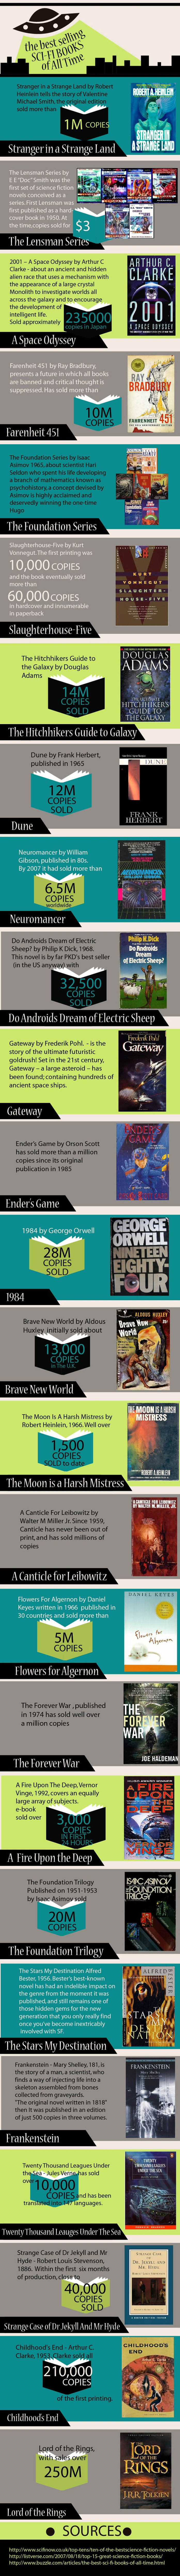 Superventas de libros de Ciencia-Ficción   The Best Selling Sci-fi Books of All Time